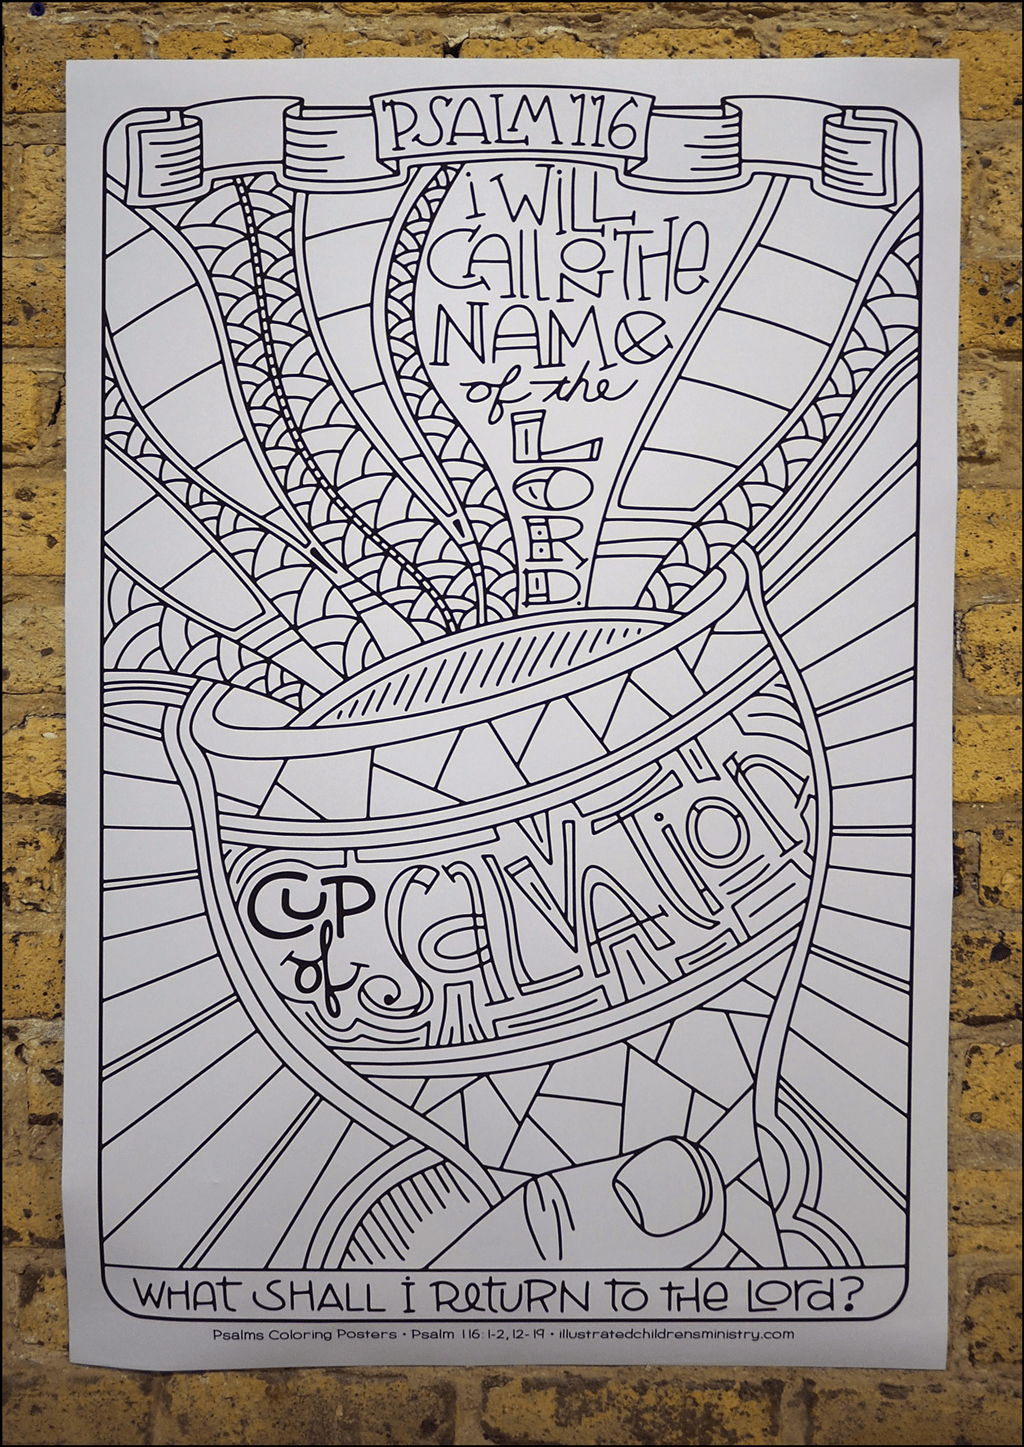 Psalms coloring poster - Cup of Salvation